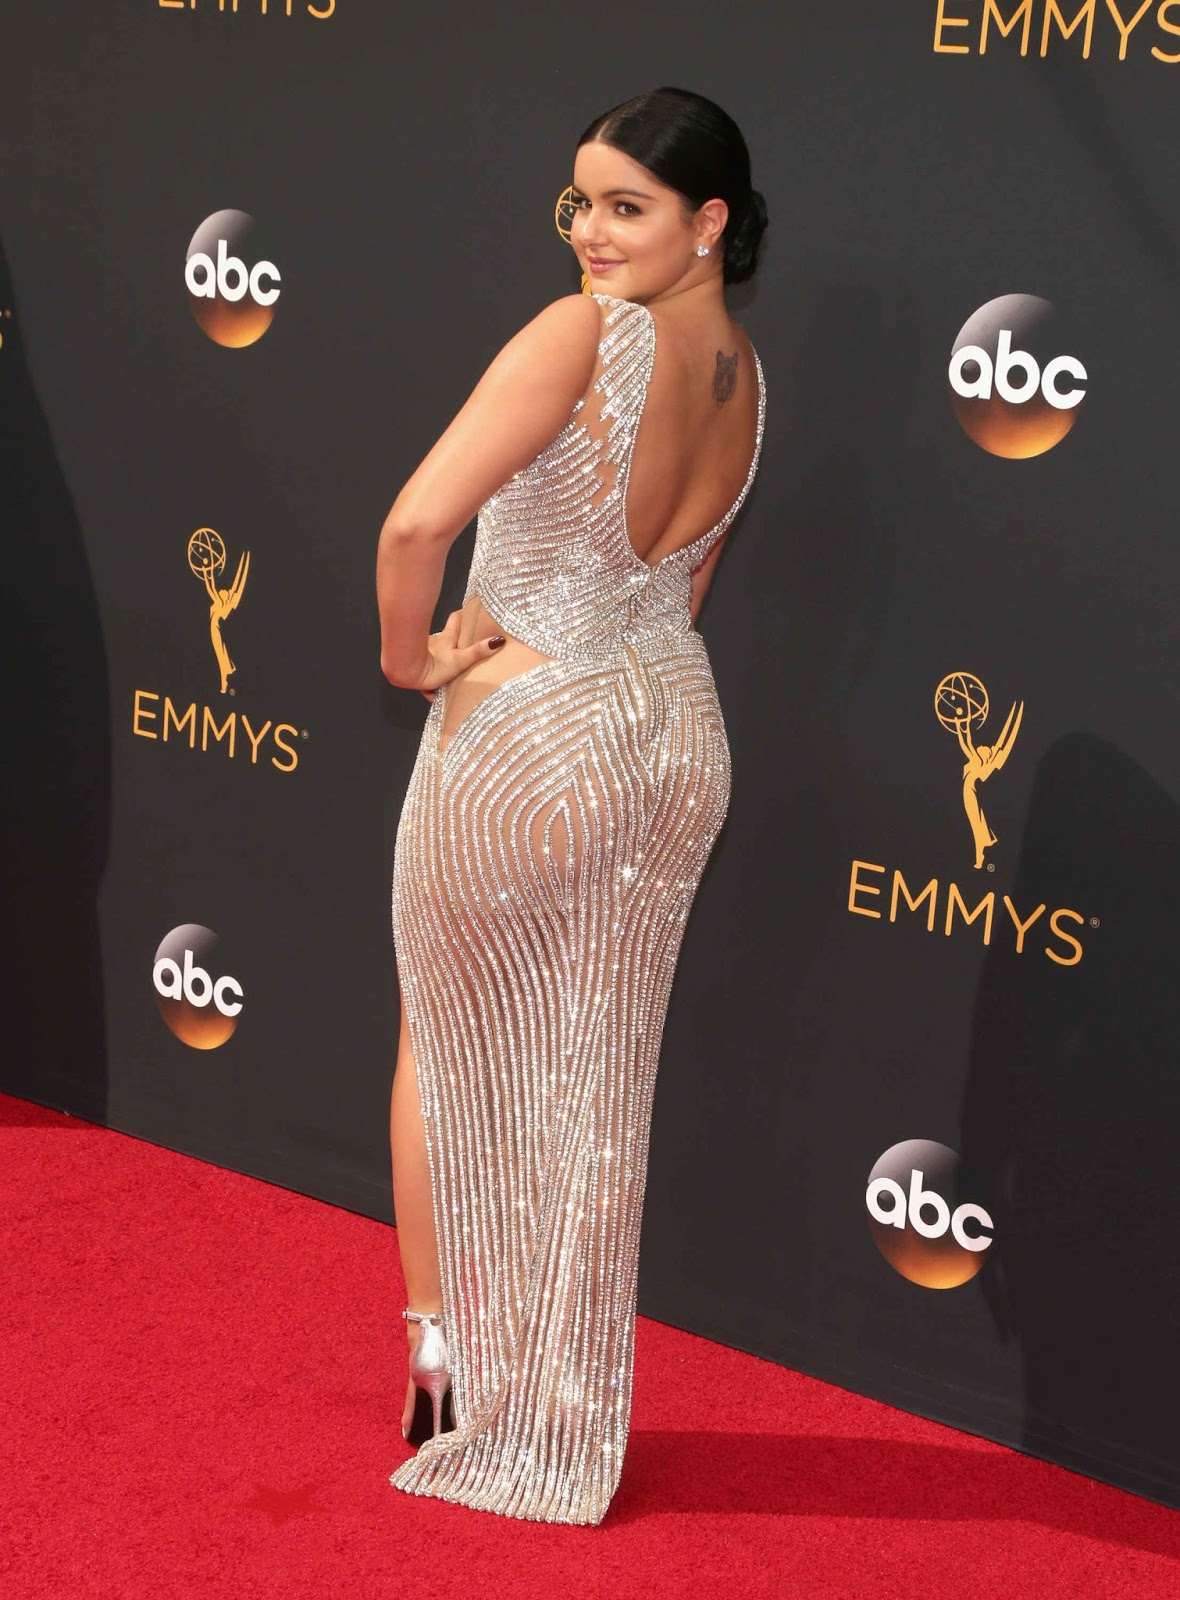 Ariel Winter at The Emmy Awards 2016